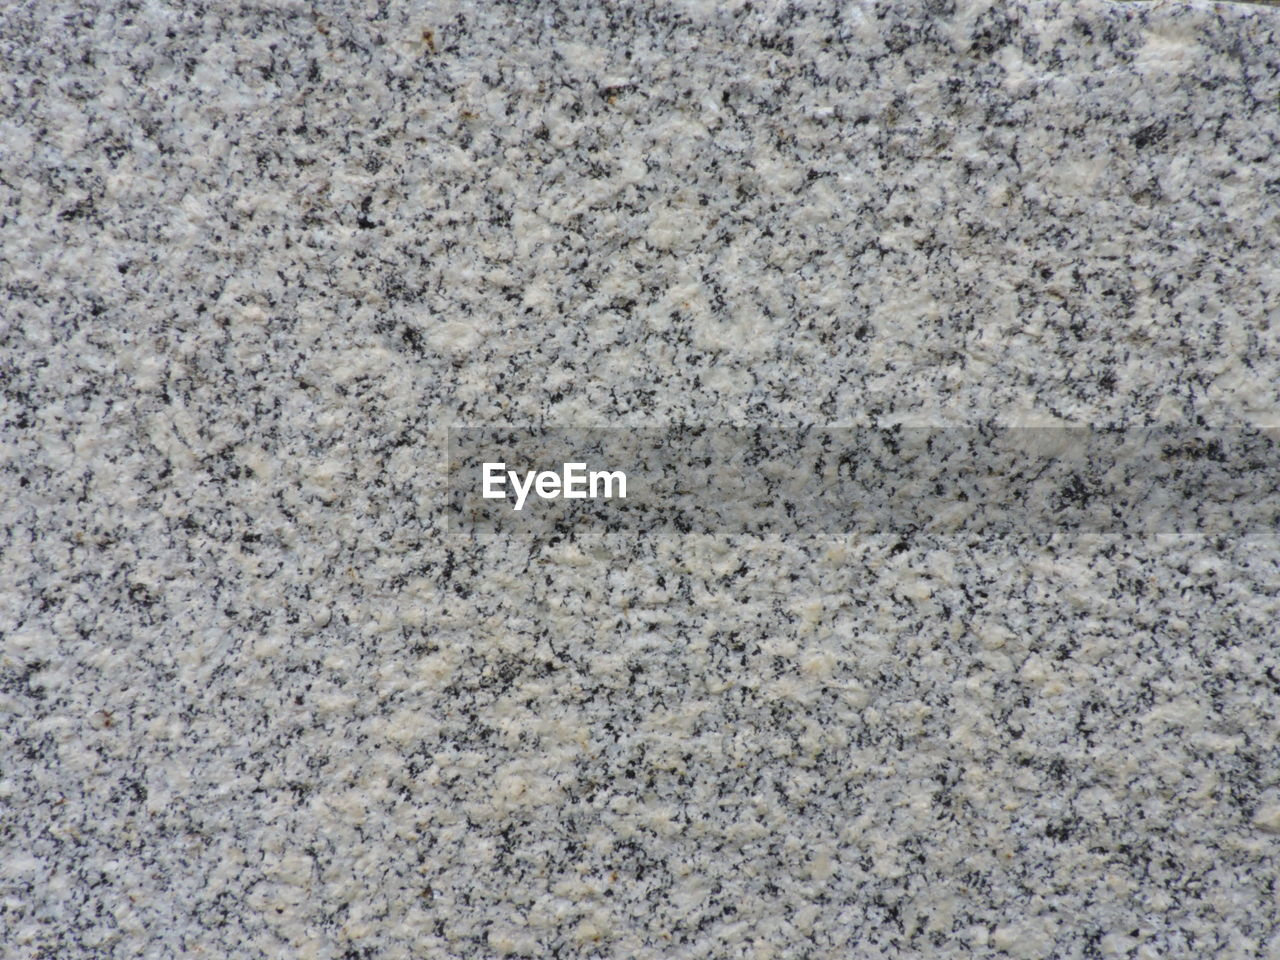 backgrounds, textured, stone material, stone - object, pattern, abstract, rock - object, gray, full frame, material, surface level, marble, macro, textured effect, nature, close-up, rough, architecture, solid, building exterior, no people, outdoors, day